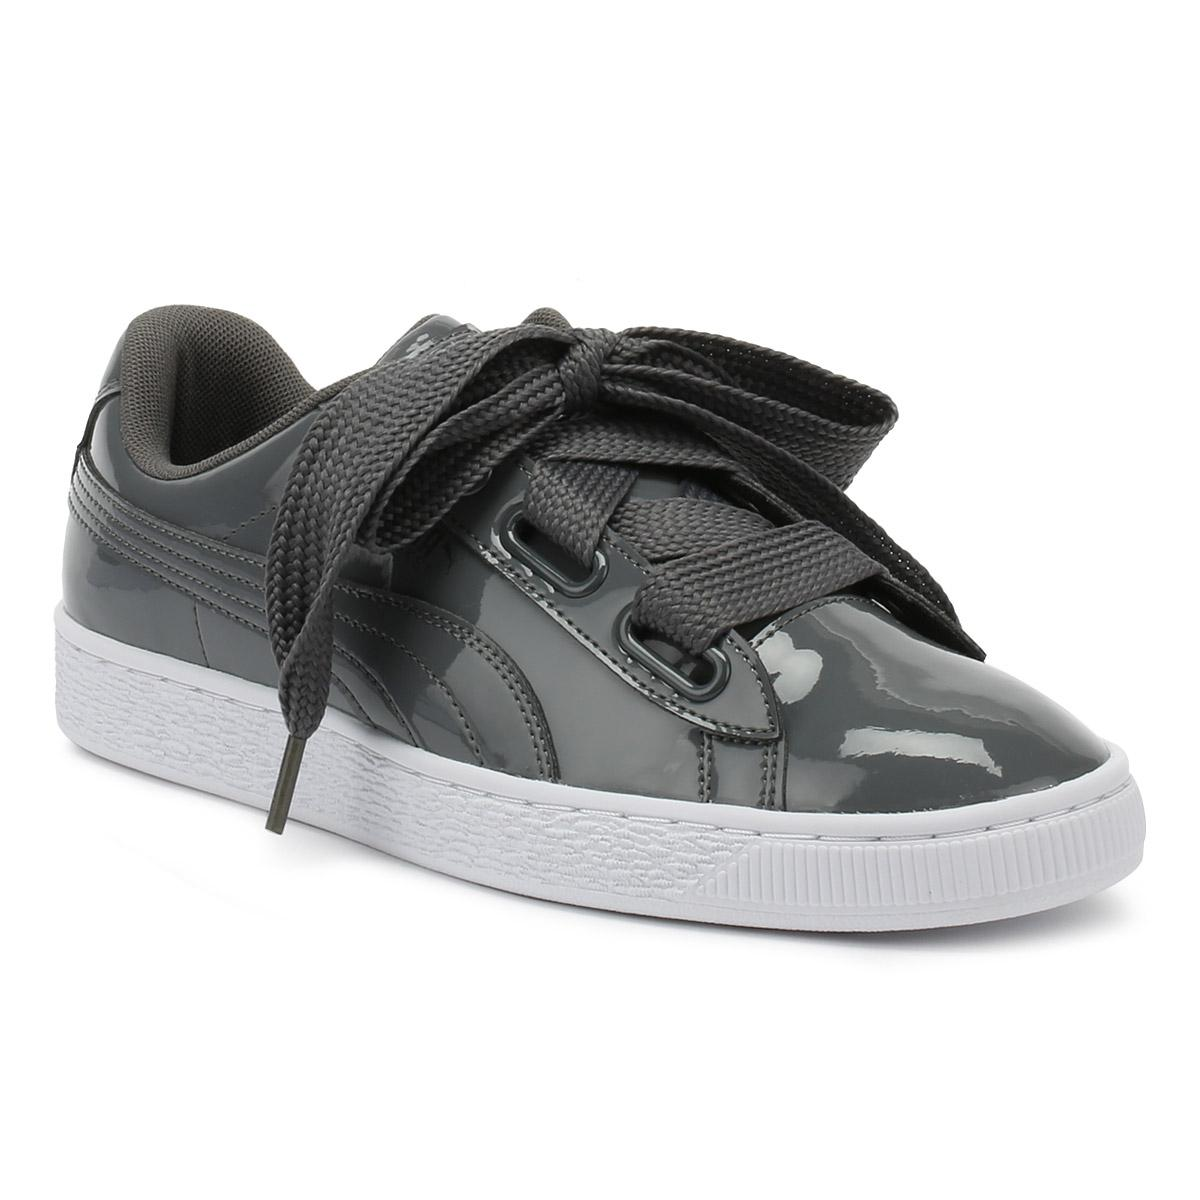 size 40 115af 04453 PUMA Womens Iron Gate Grey Basket Heart Patent Trainers in ...